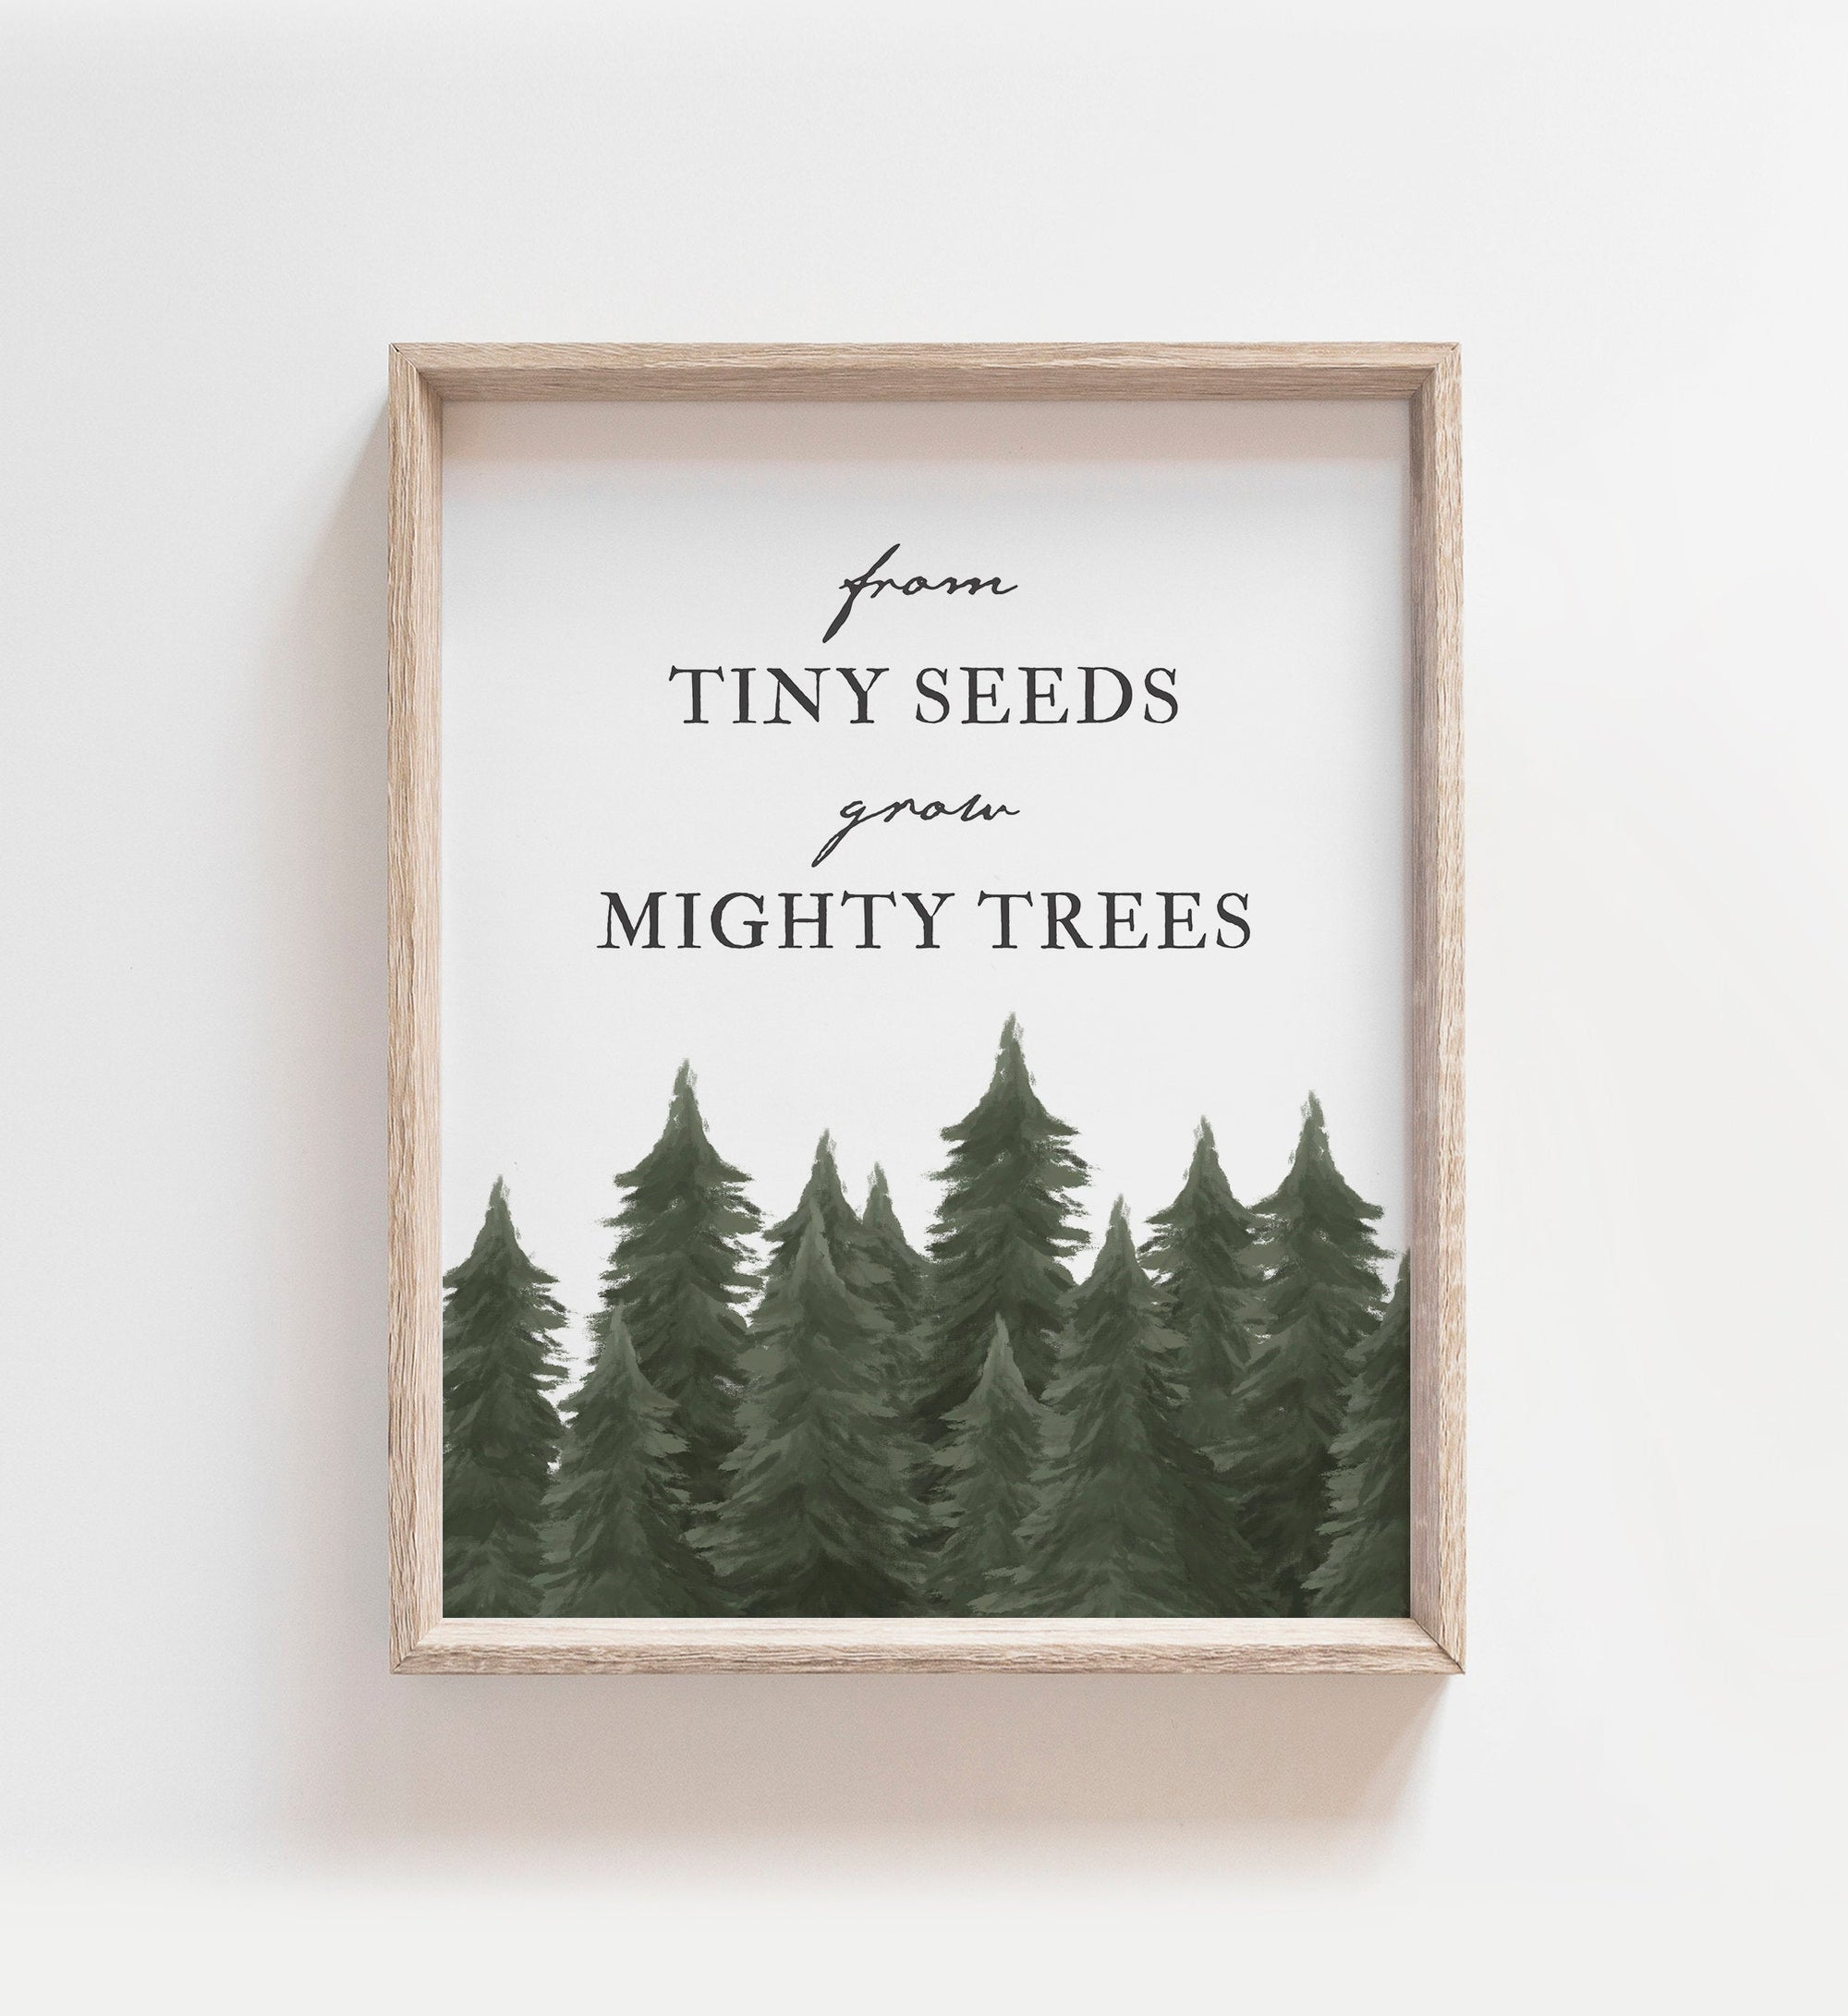 From Tiny Seeds Grow Might Trees